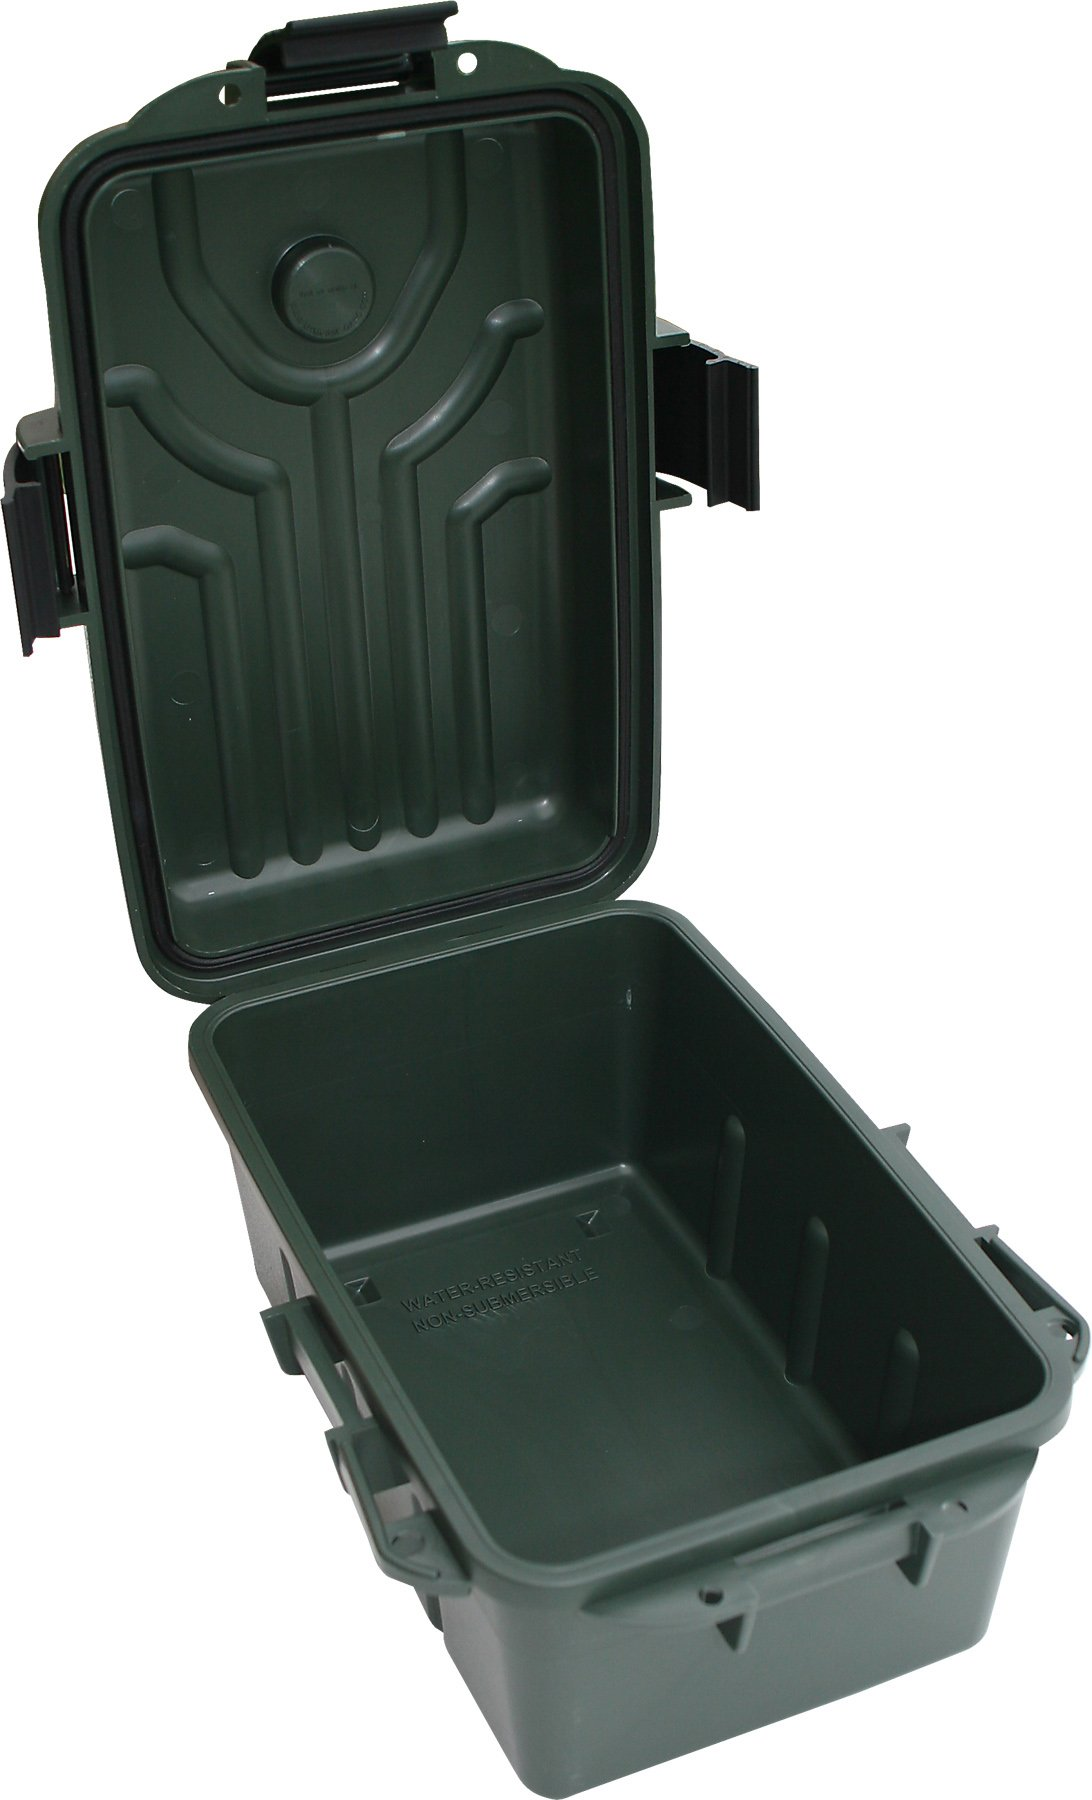 MTM Survivor Dry Box with O-Ring Seal (Forest Green, Large) by MTM